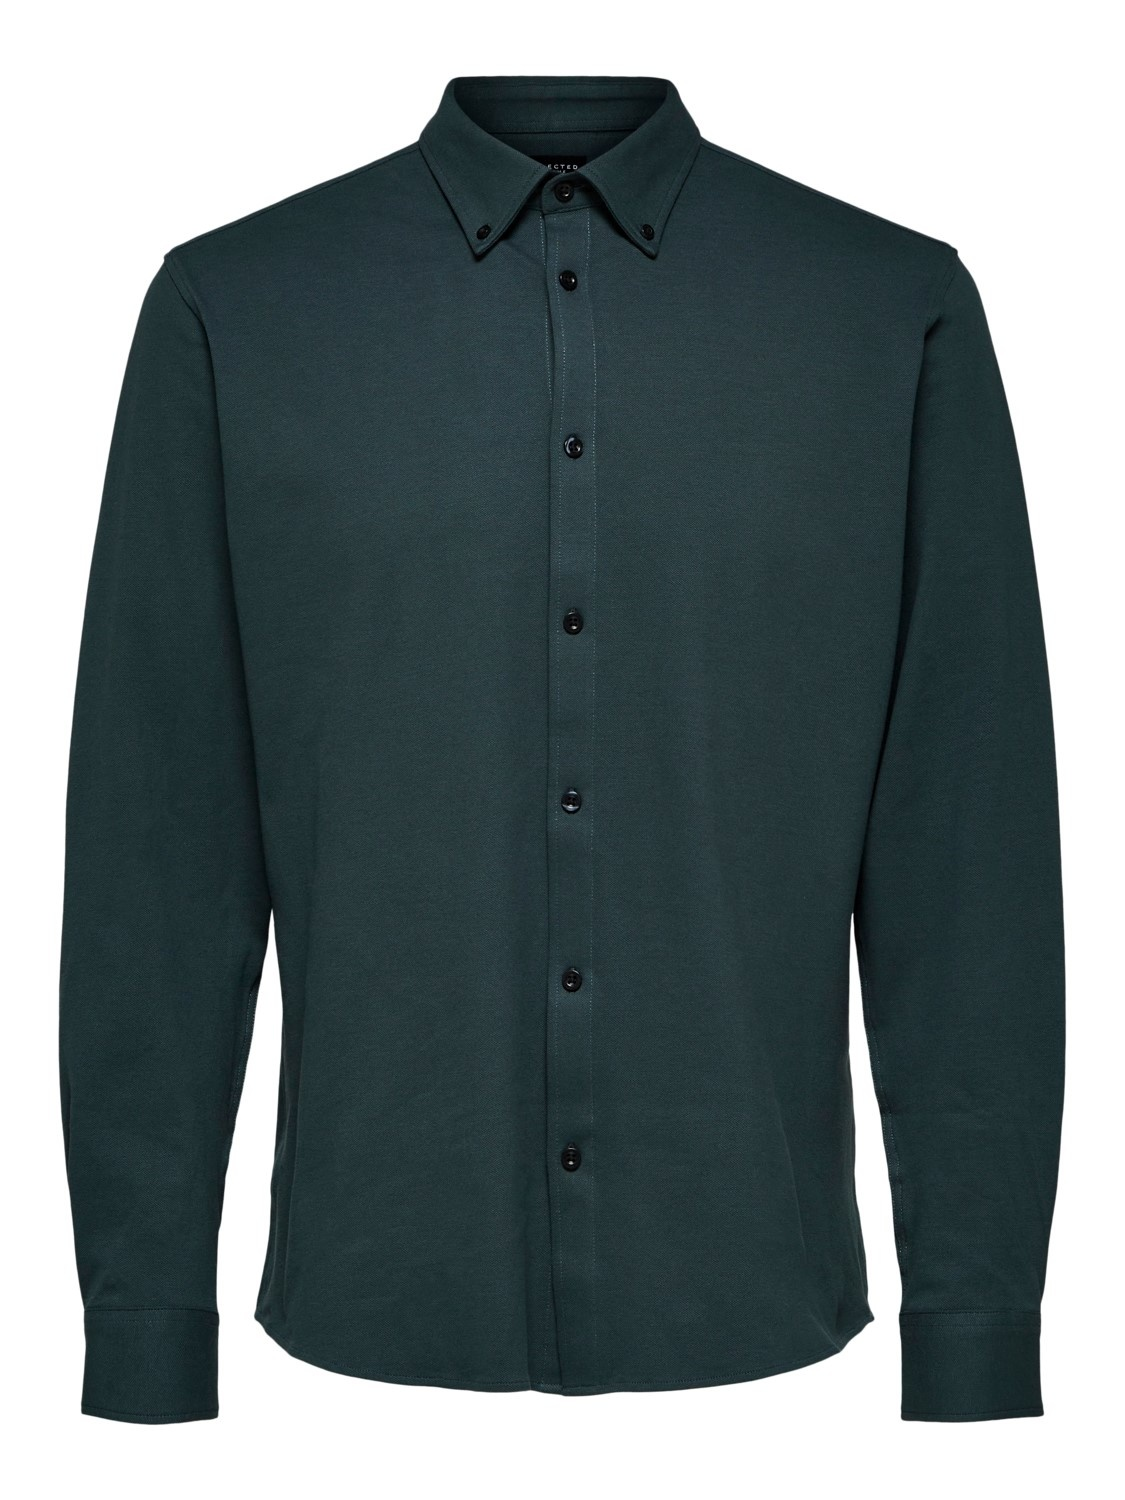 Selected SLHSlimavenue Knit Shirt